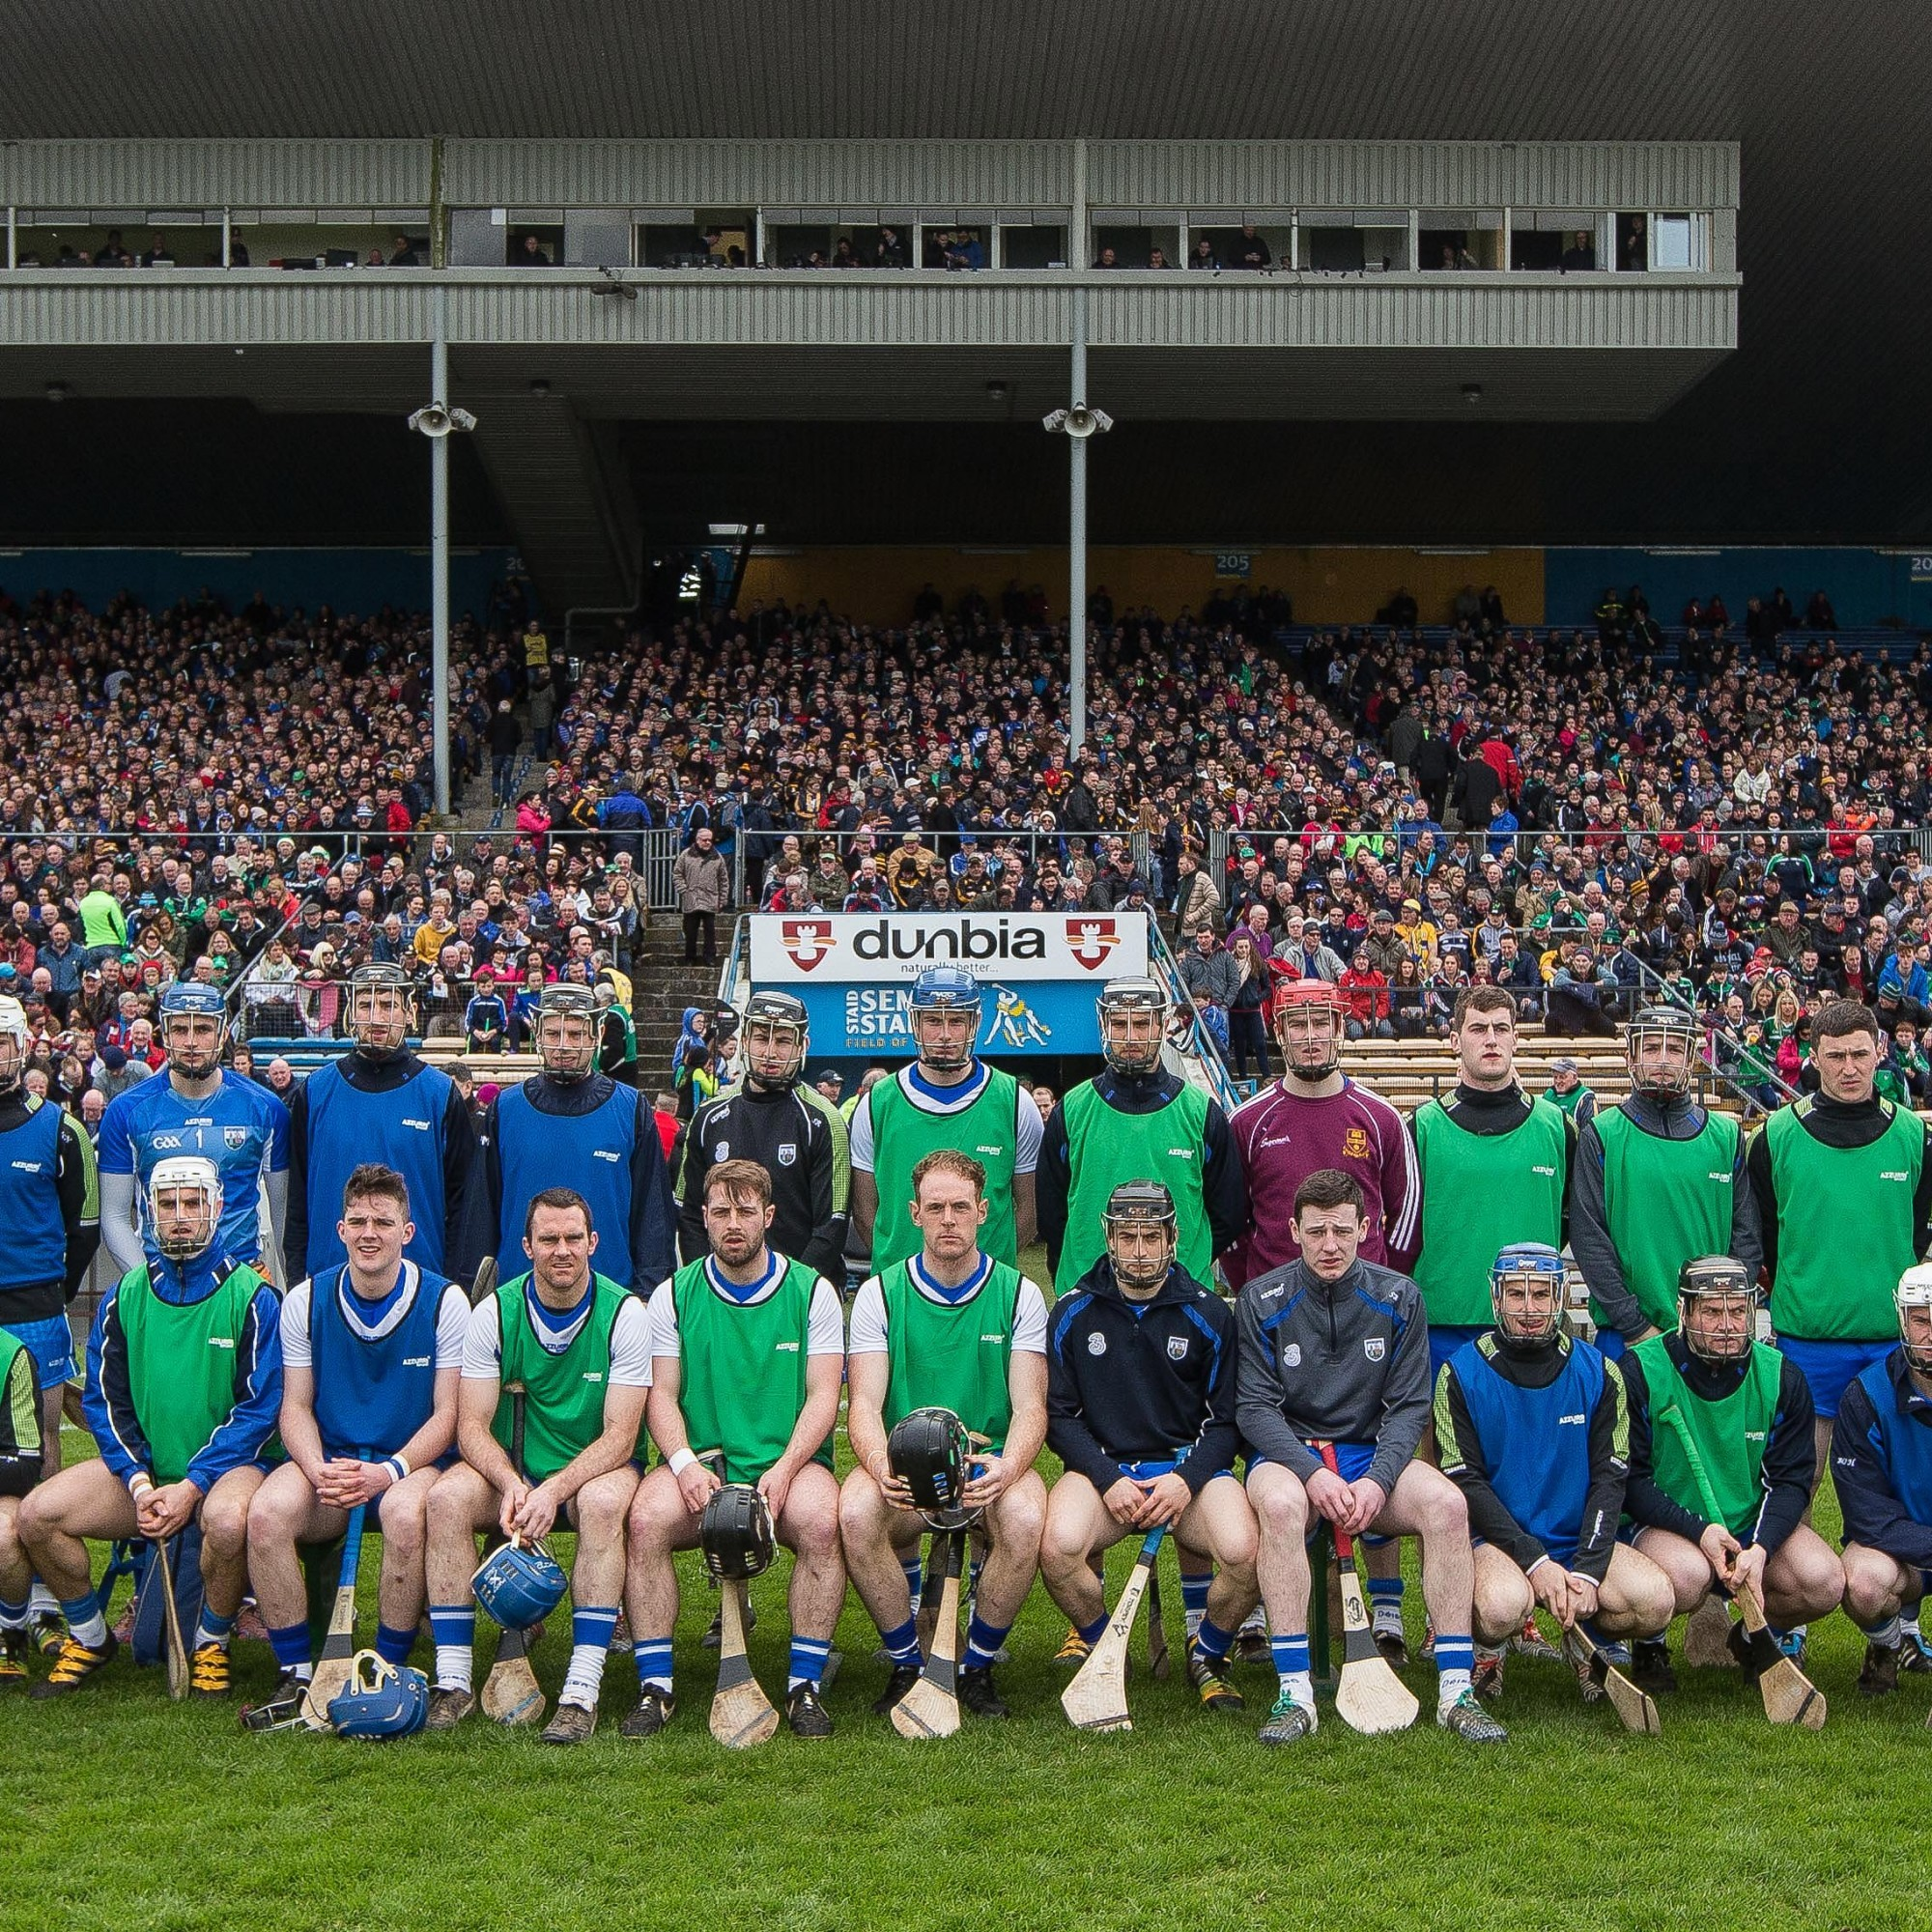 Maurice Shanahan absent again as Waterford name team to face Clare